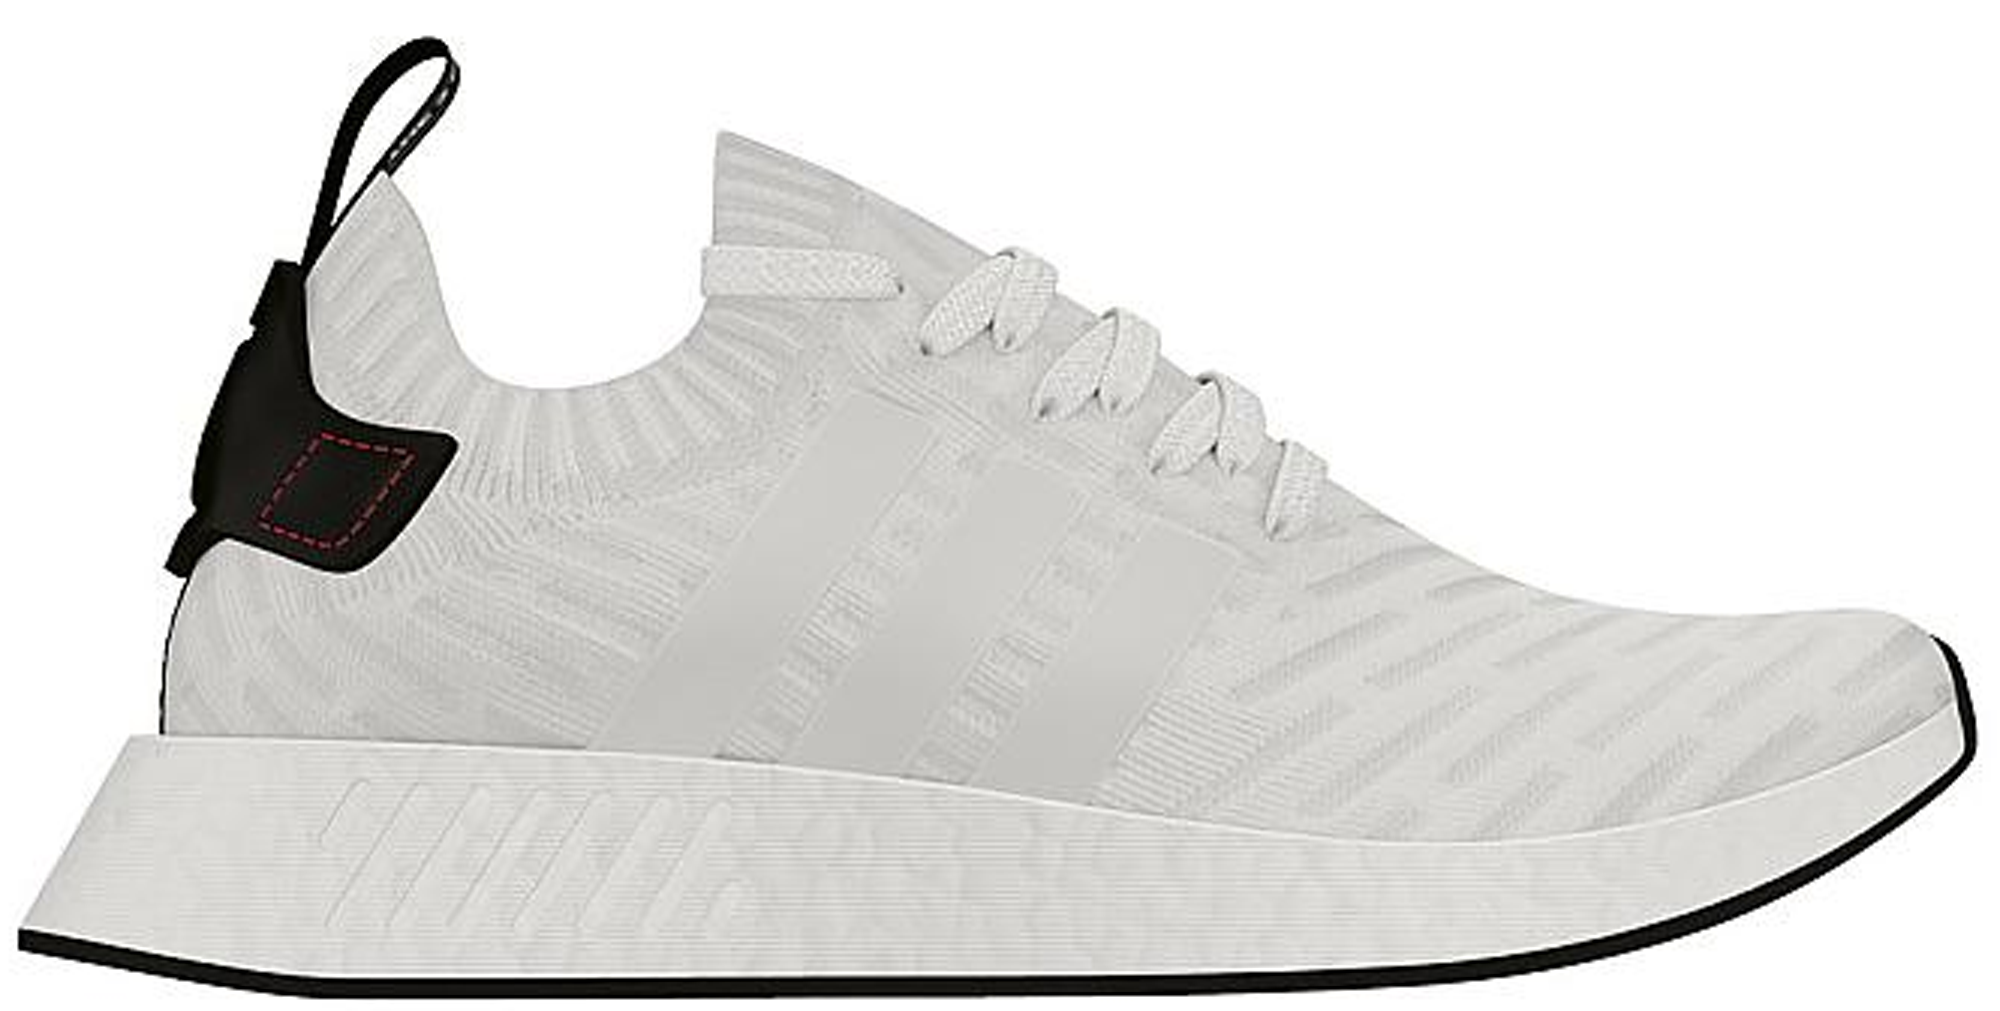 Cuerda maletero toque  adidas NMD R2 White Black - StockX News